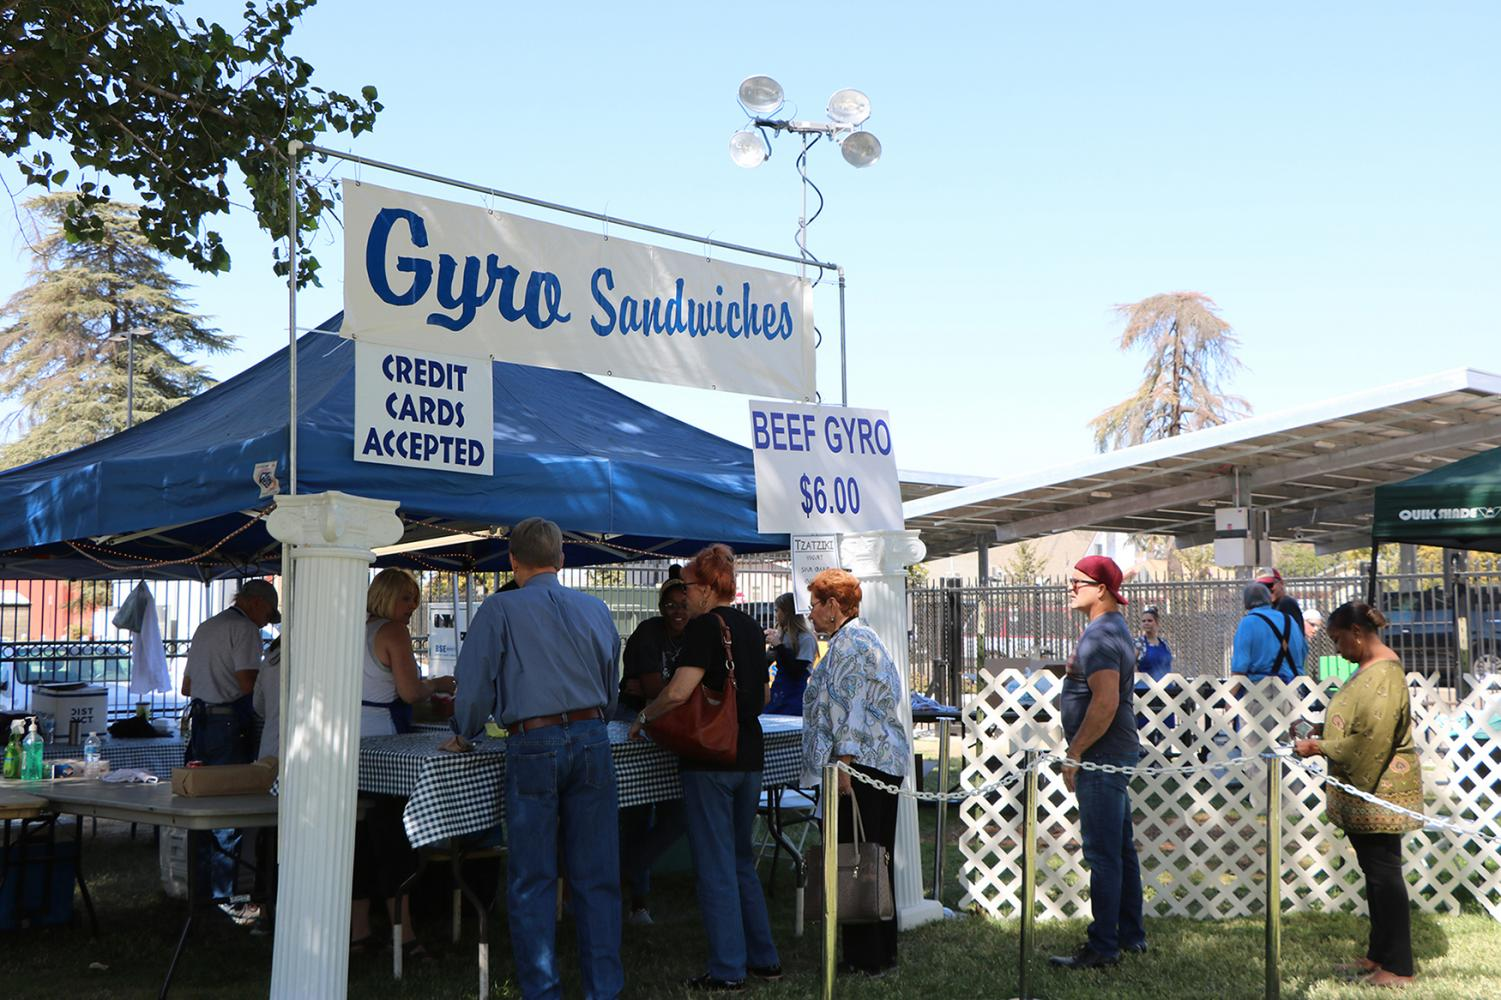 Visitors of the Greek Food Festival waiting in line for a Gyro Sandwich on Oct. 5.